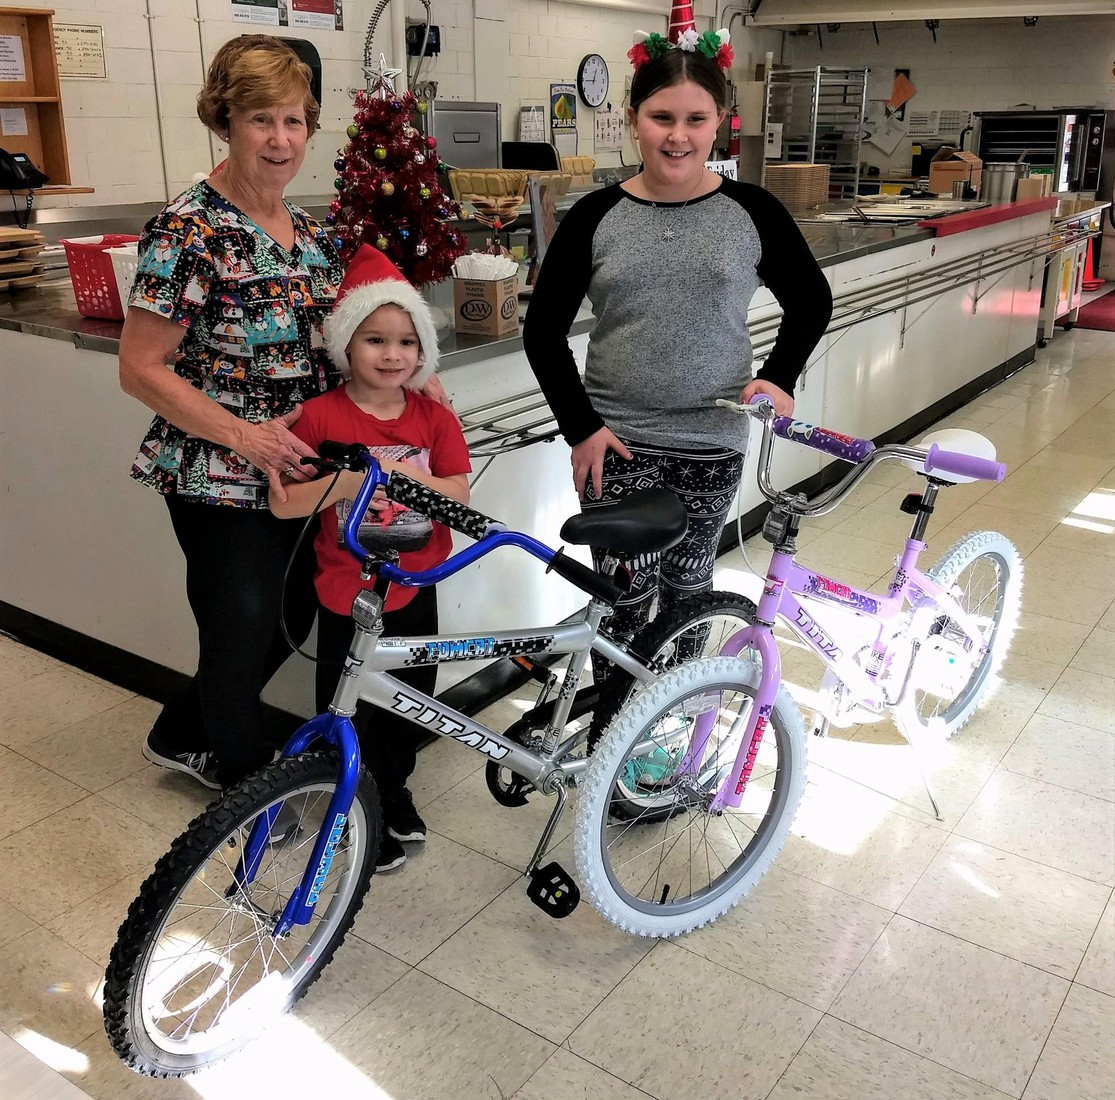 Park Elementary kitchen assistant Mrs. Tamara Peine with bike-winning students Dexter Clark and Addison Hope.